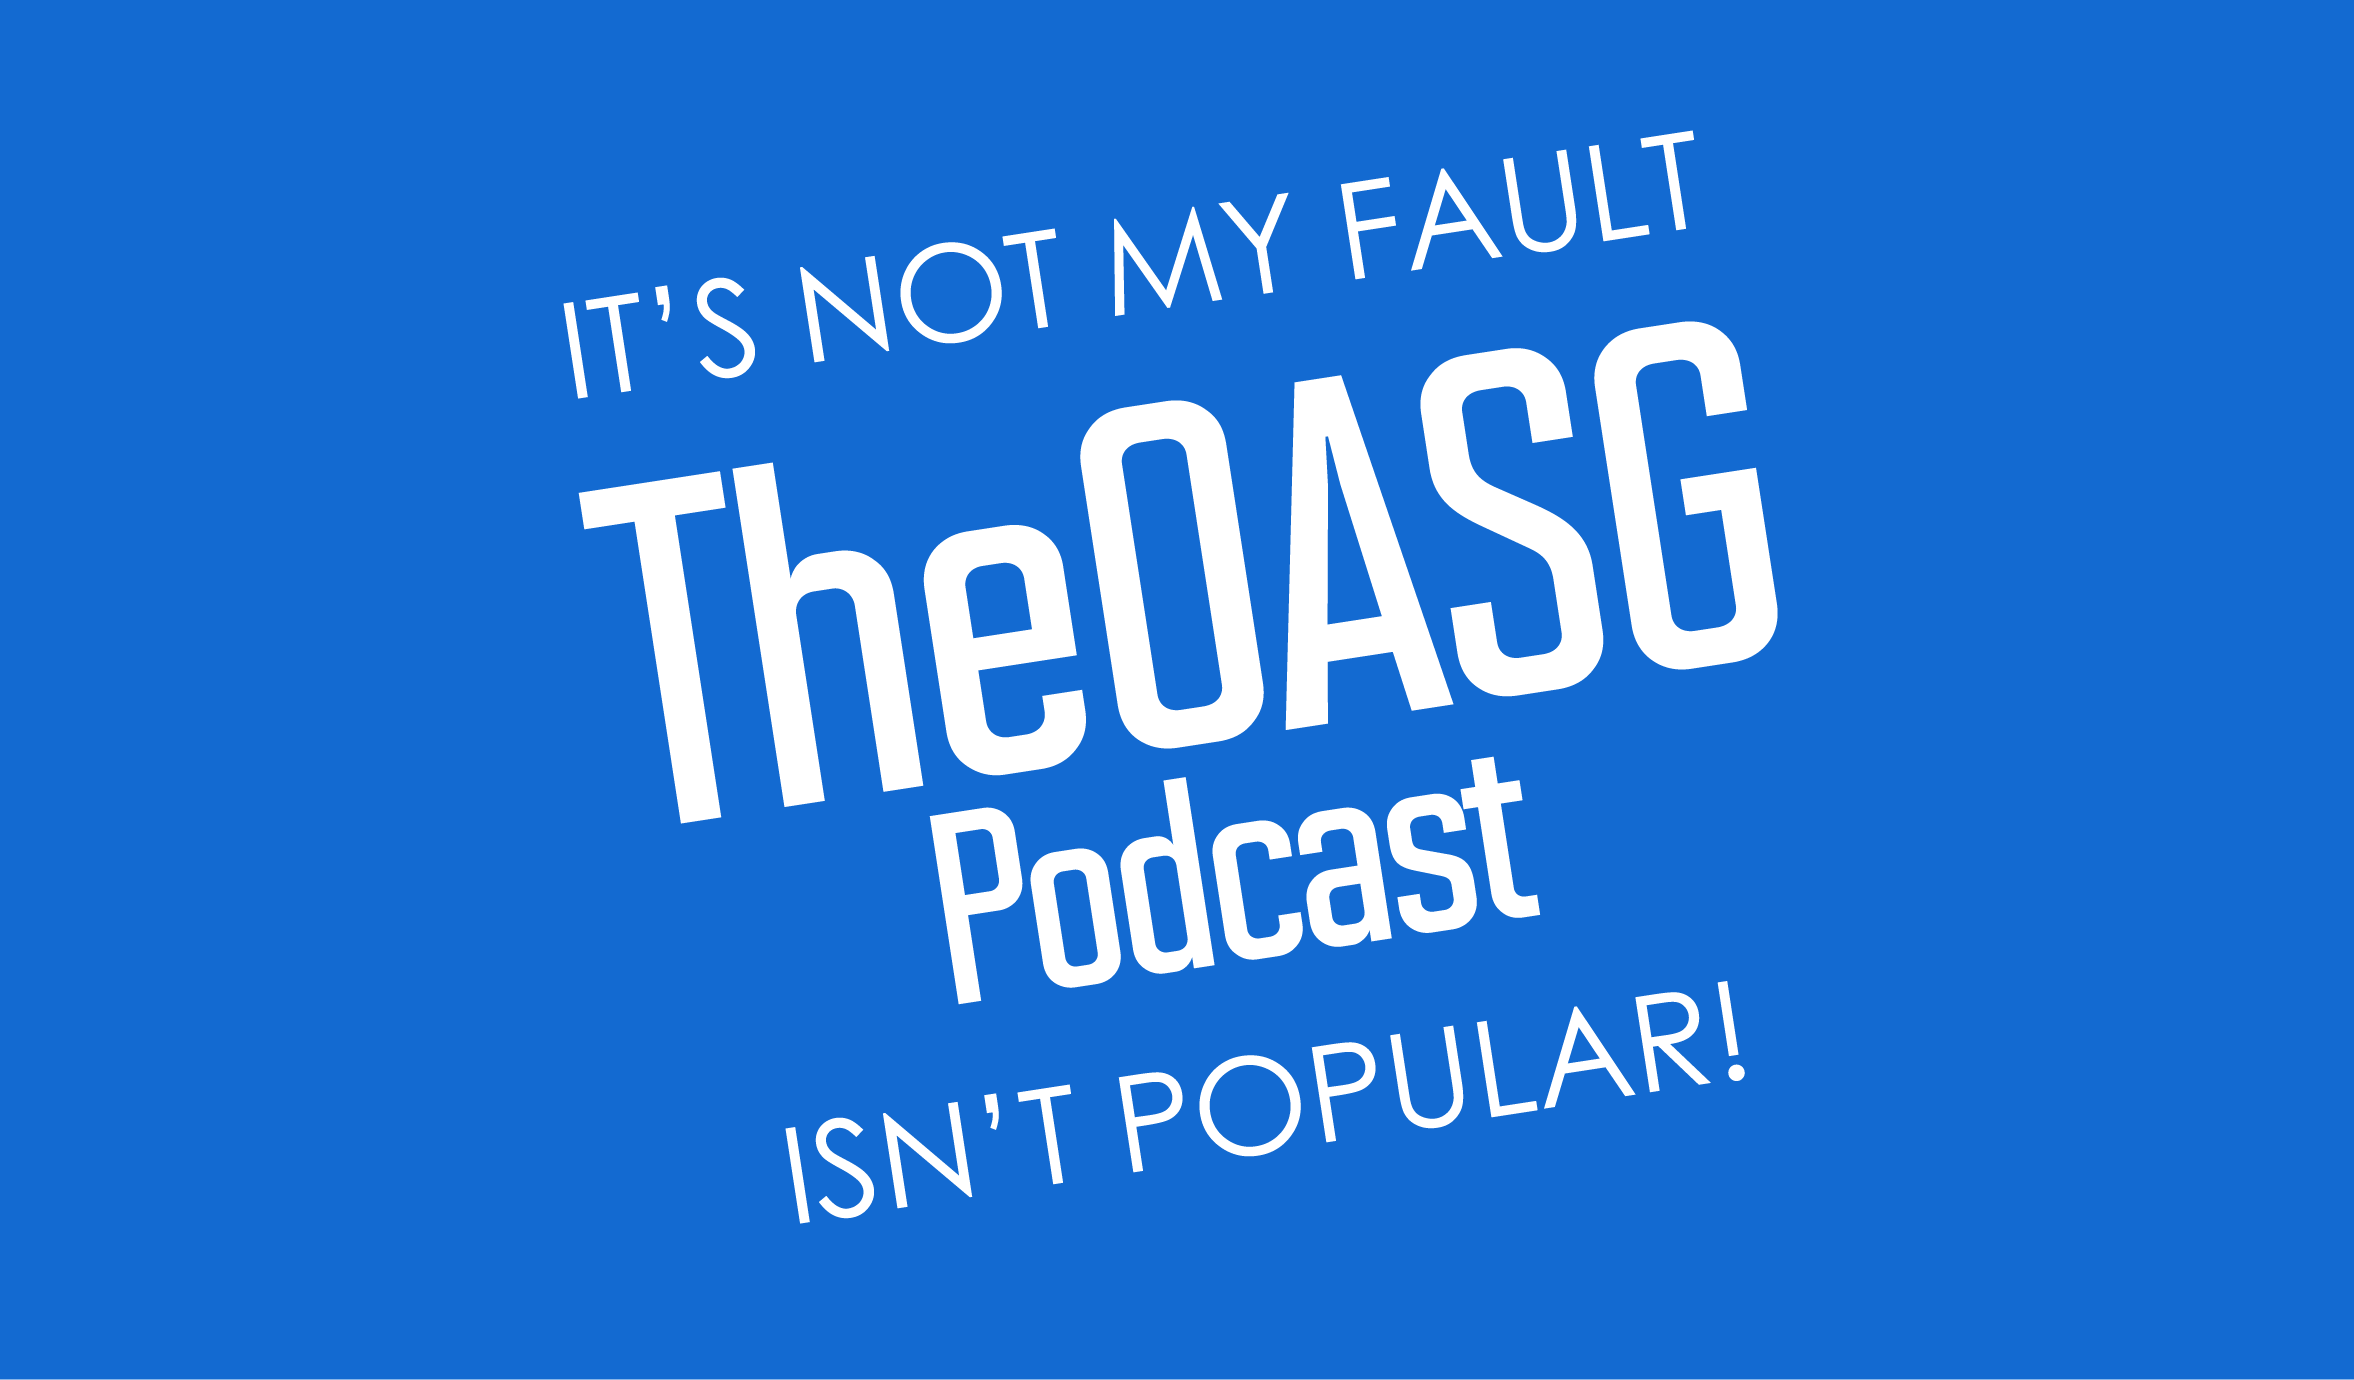 Featured image for TheOASG Podcast Episode 122: Back to Normal Recording Length Edition